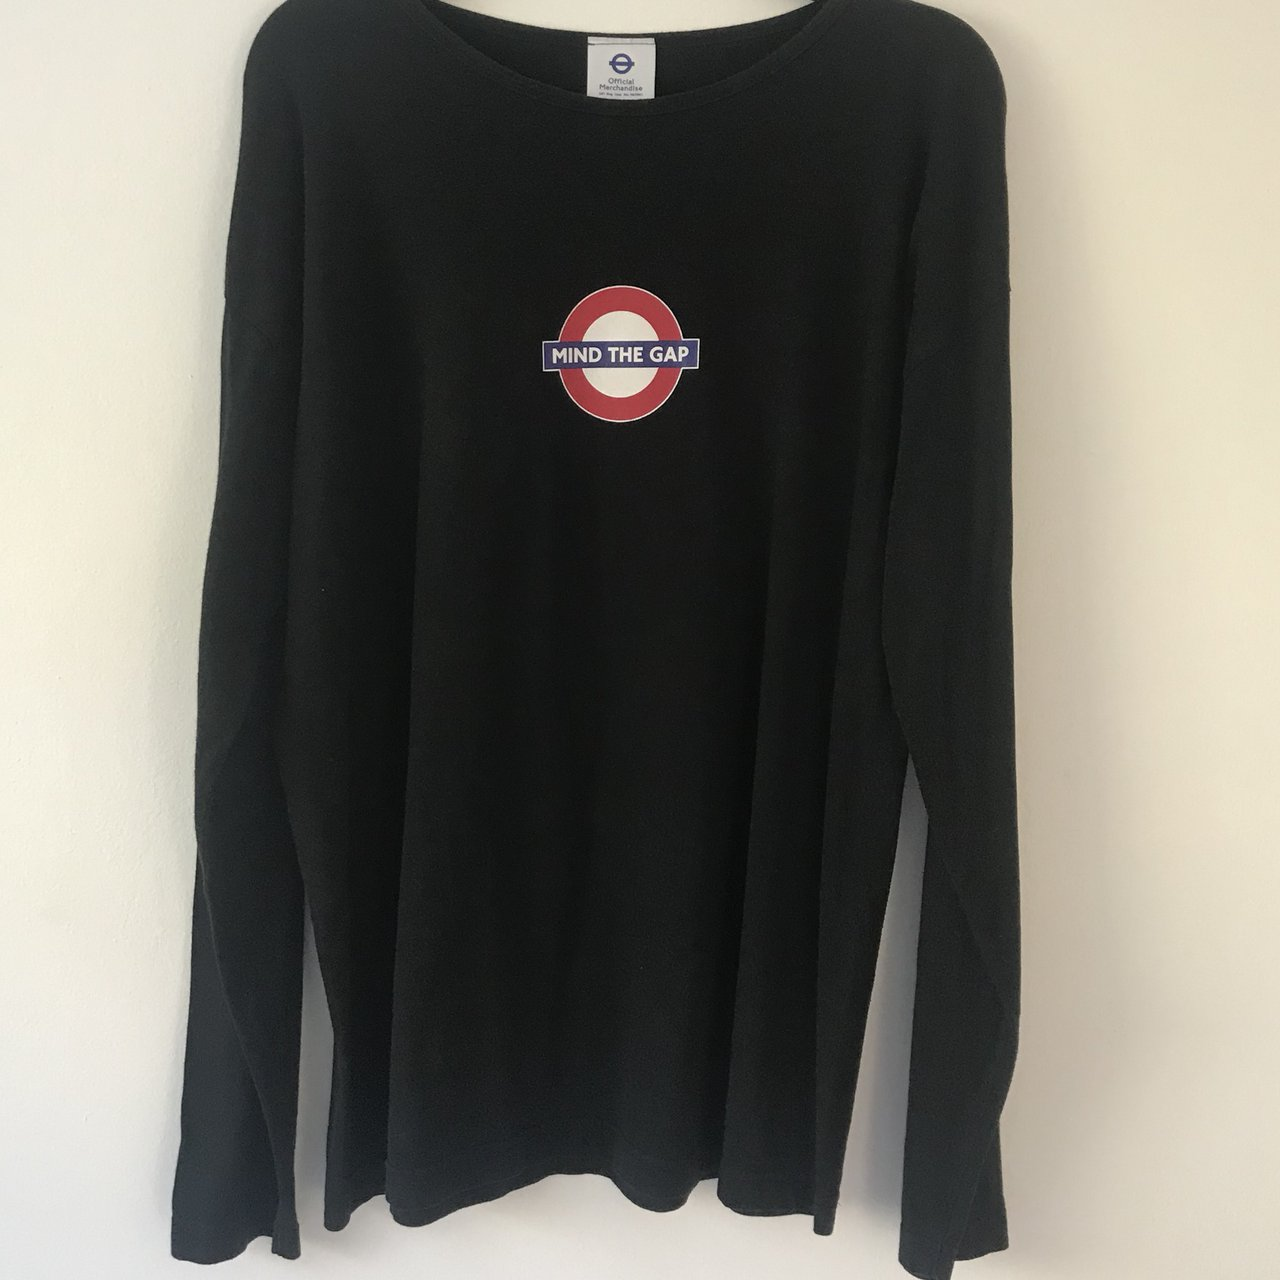 Listed on Depop by txmmg